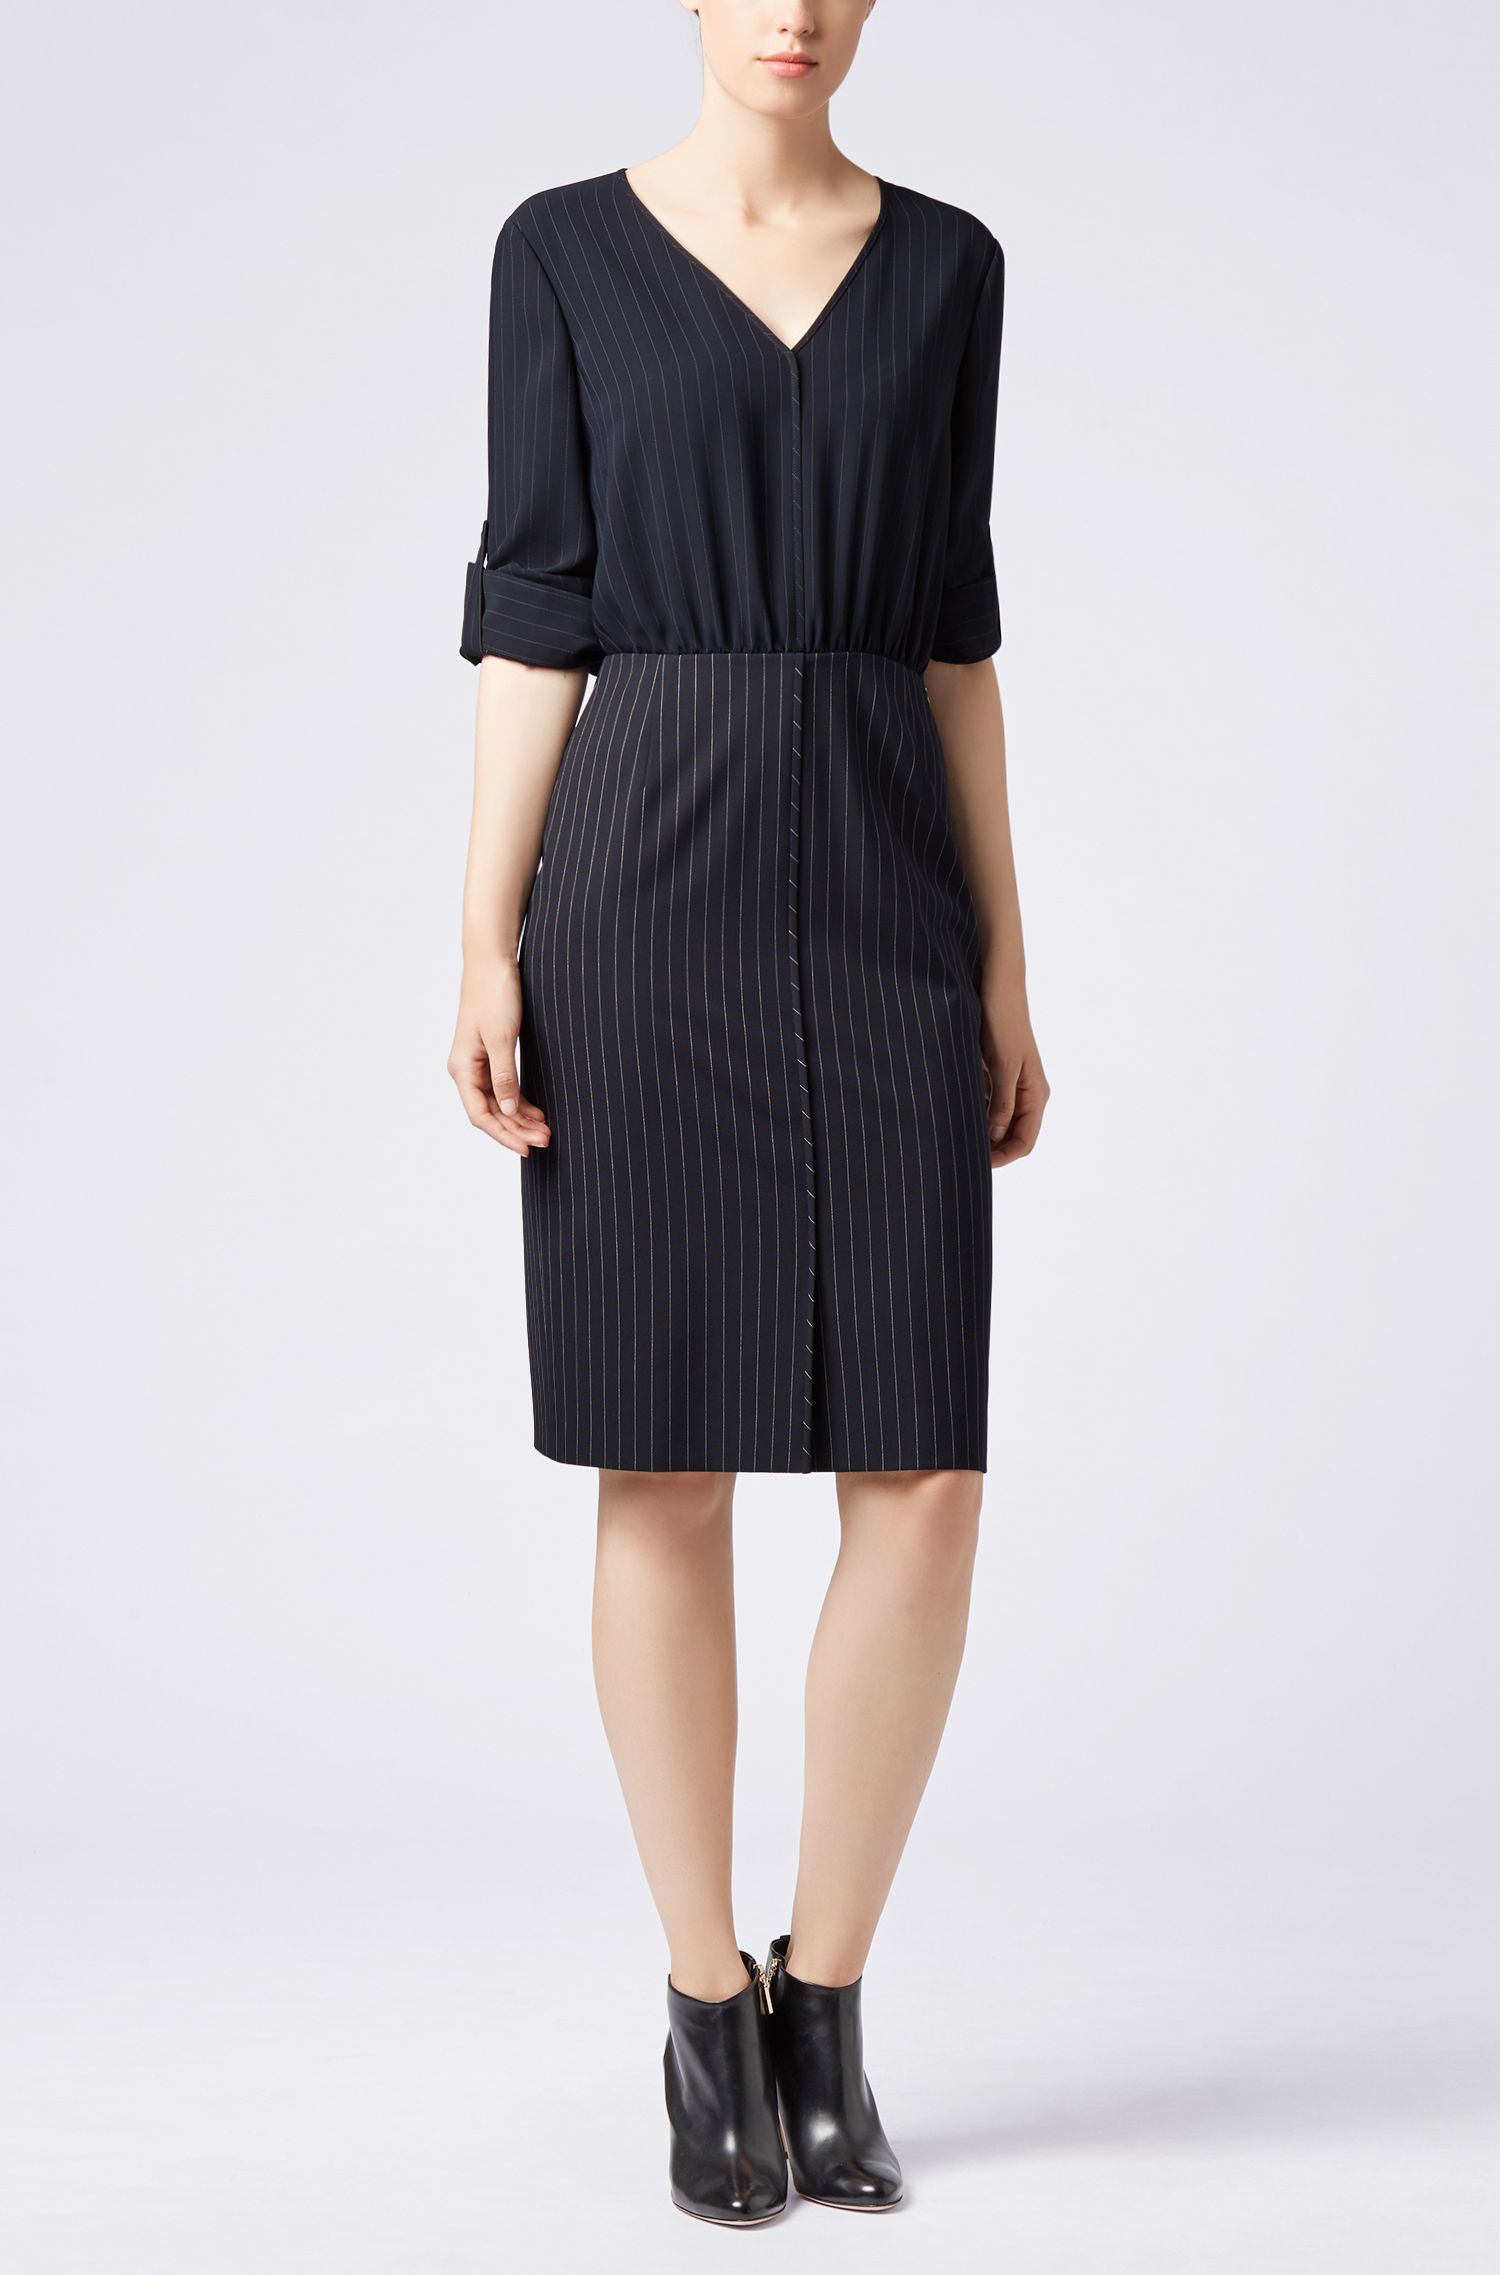 Pinstripe dress with blouse-style upper section, Patterned